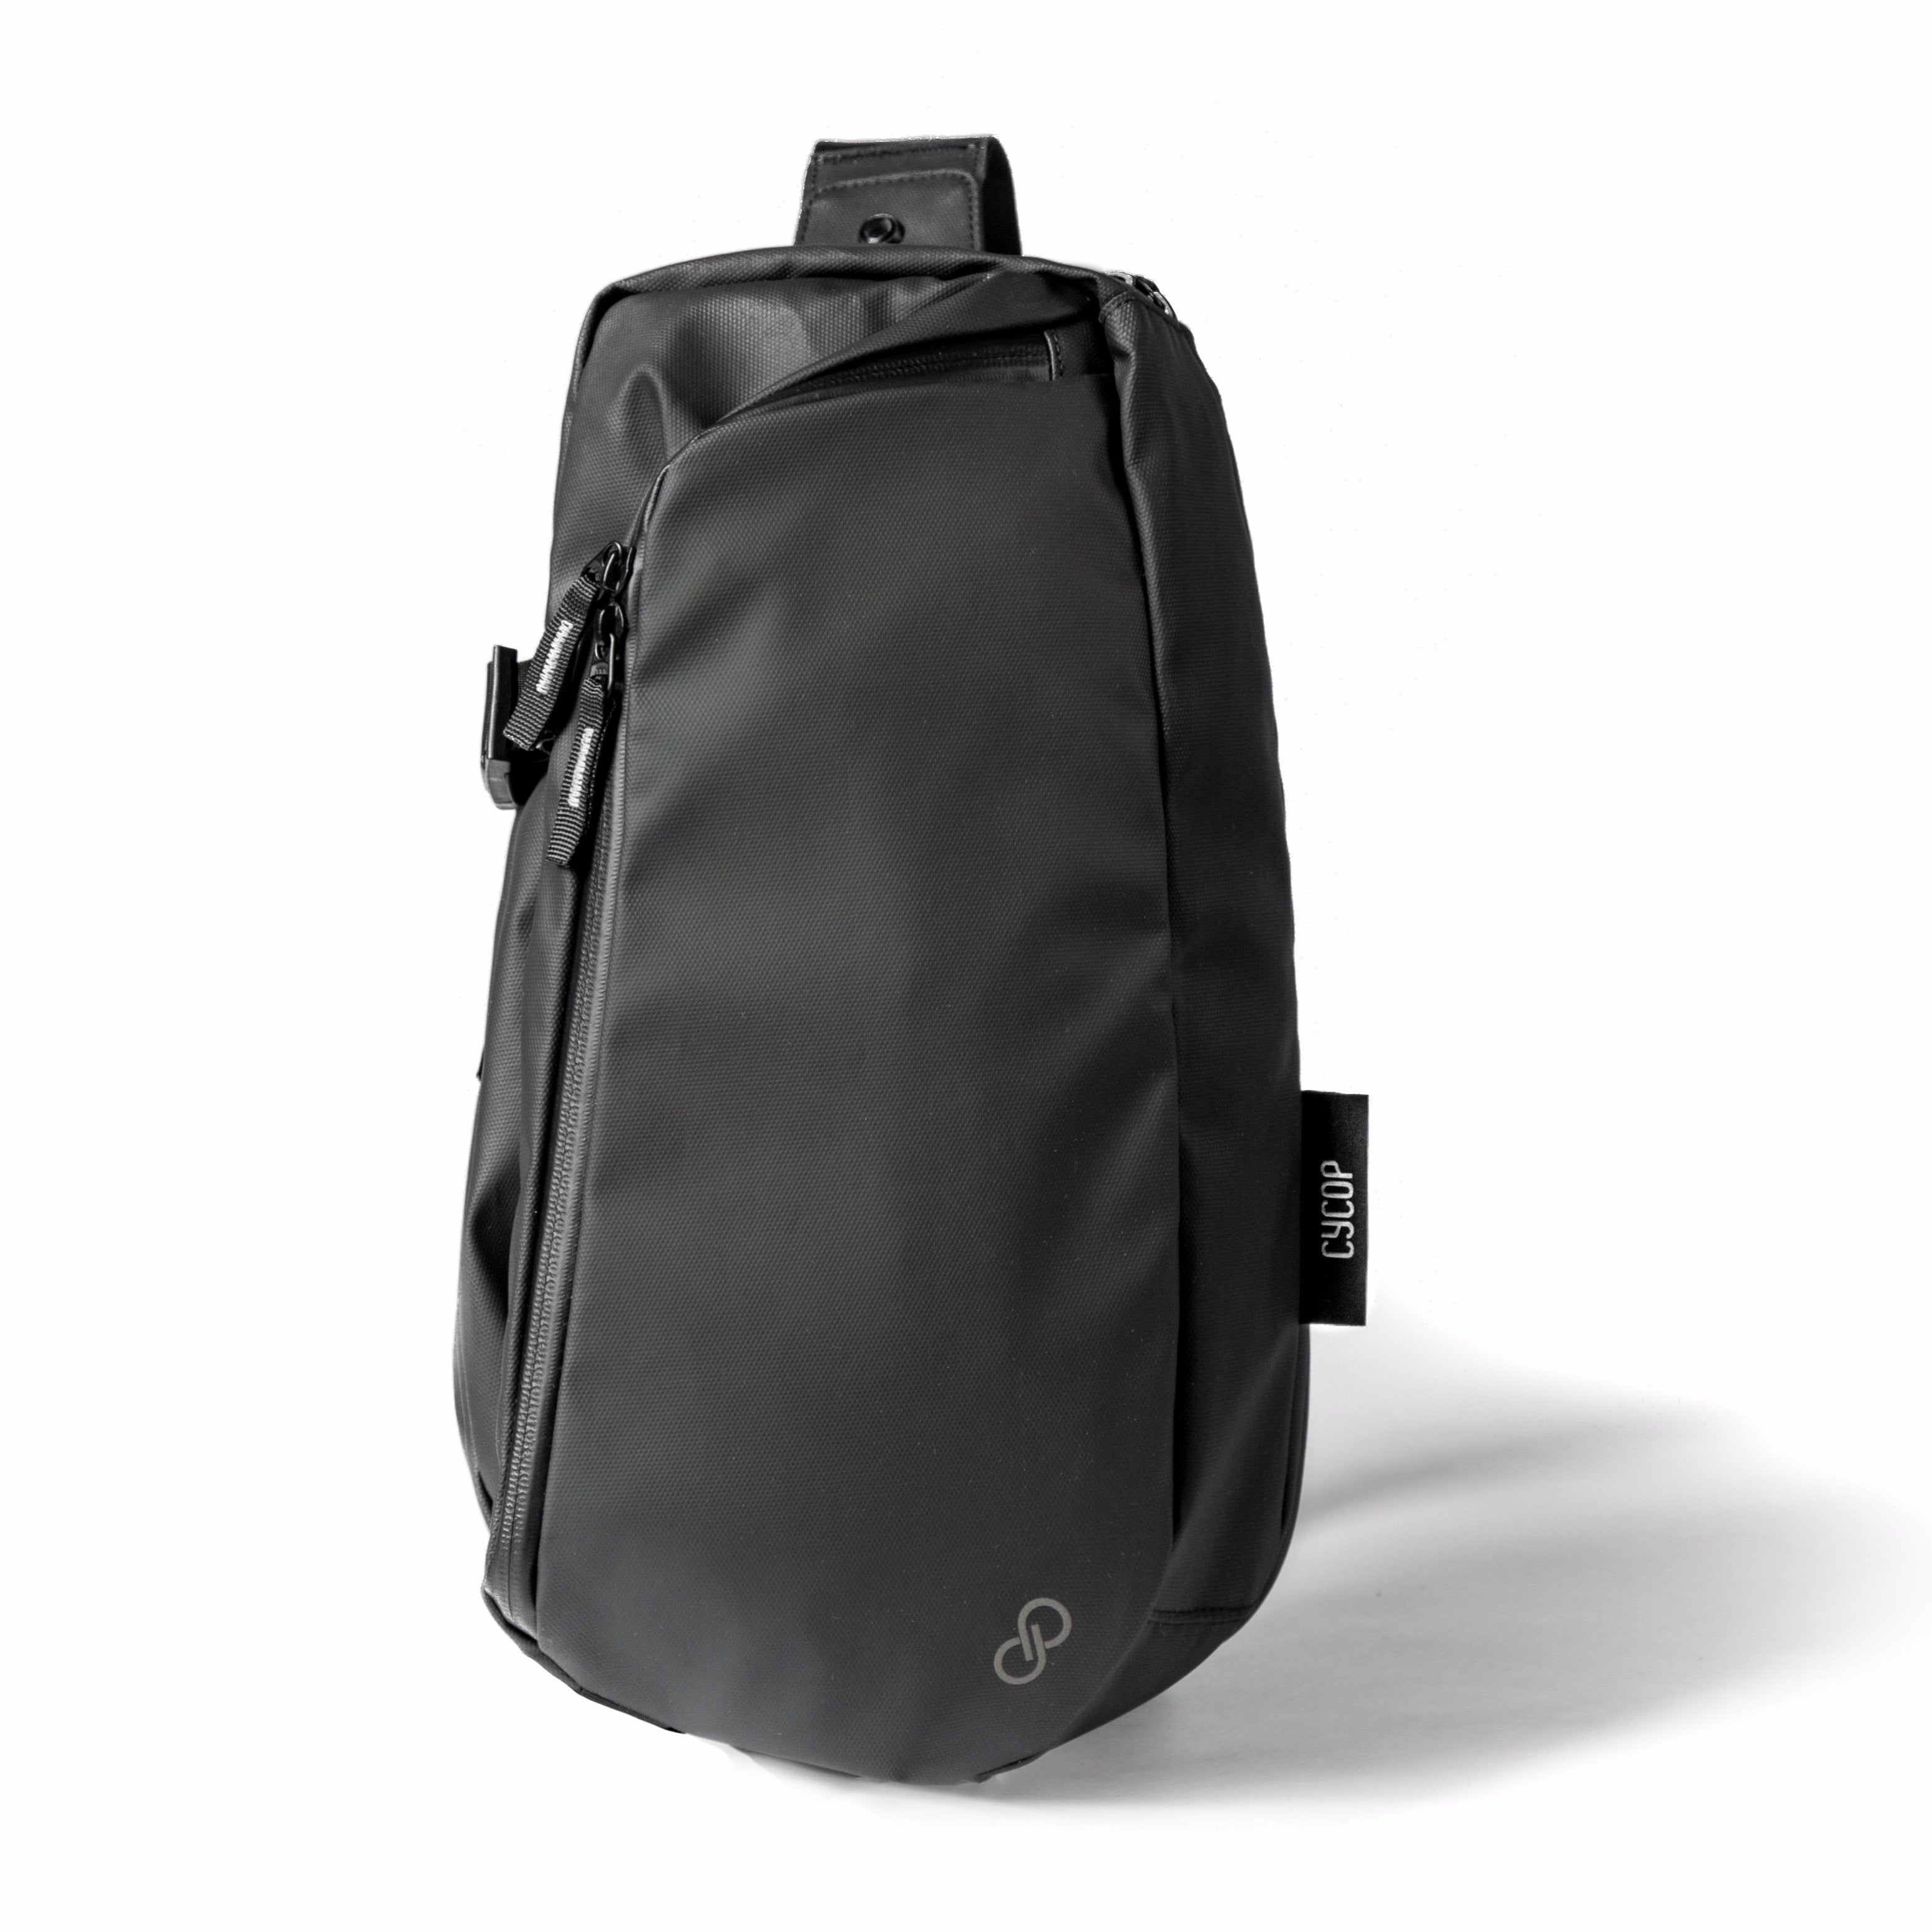 Daysling 2.0 EXPLORER - Best Daily Sling Bag